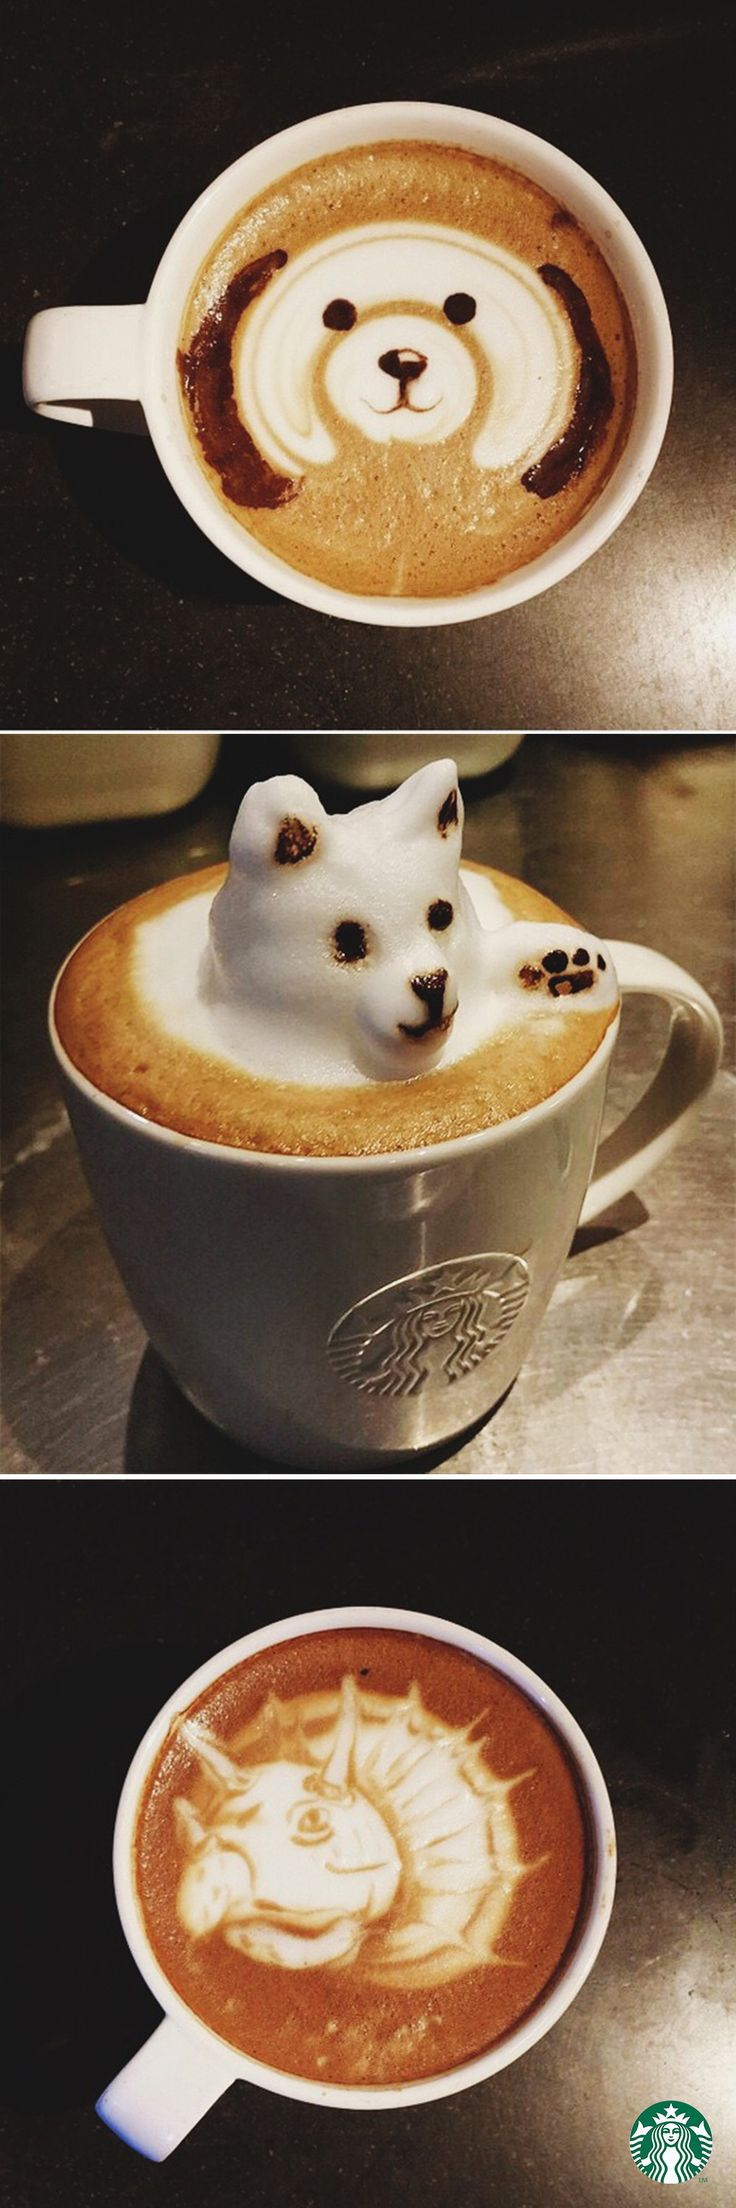 If you can dream it, Instagram latte artist Paulo Asi can create it.